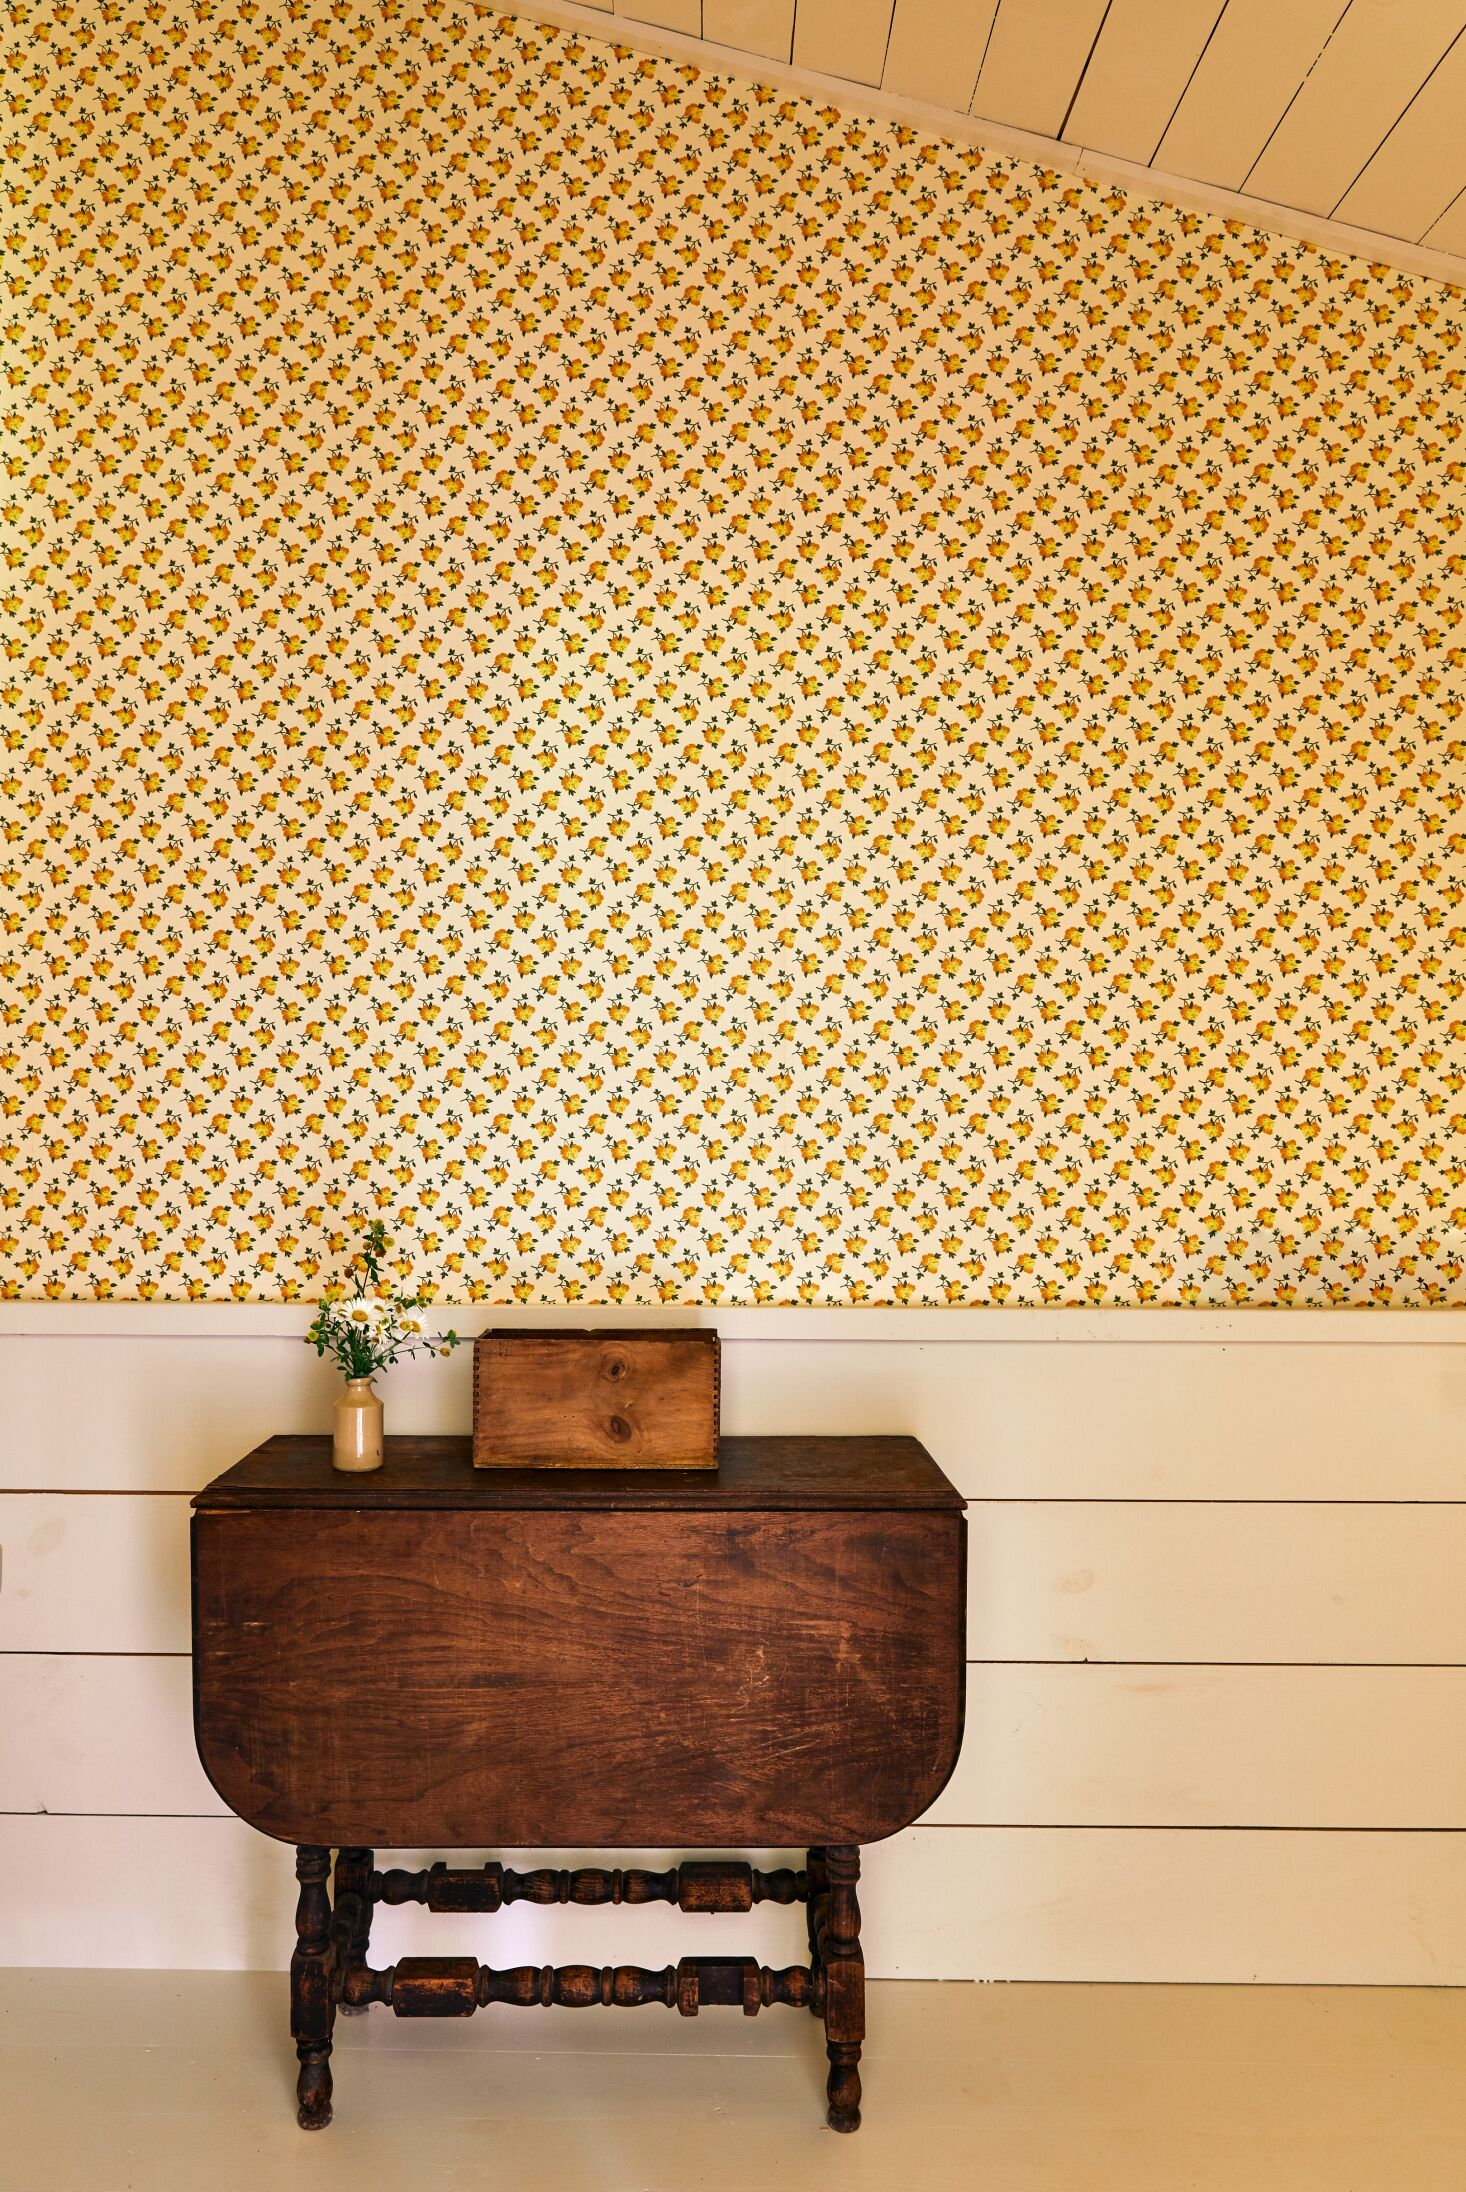 Remodeling 101 All About Stair Runners Bathroom at Bovina Farm and Fermentory, Photo by Christian Harder